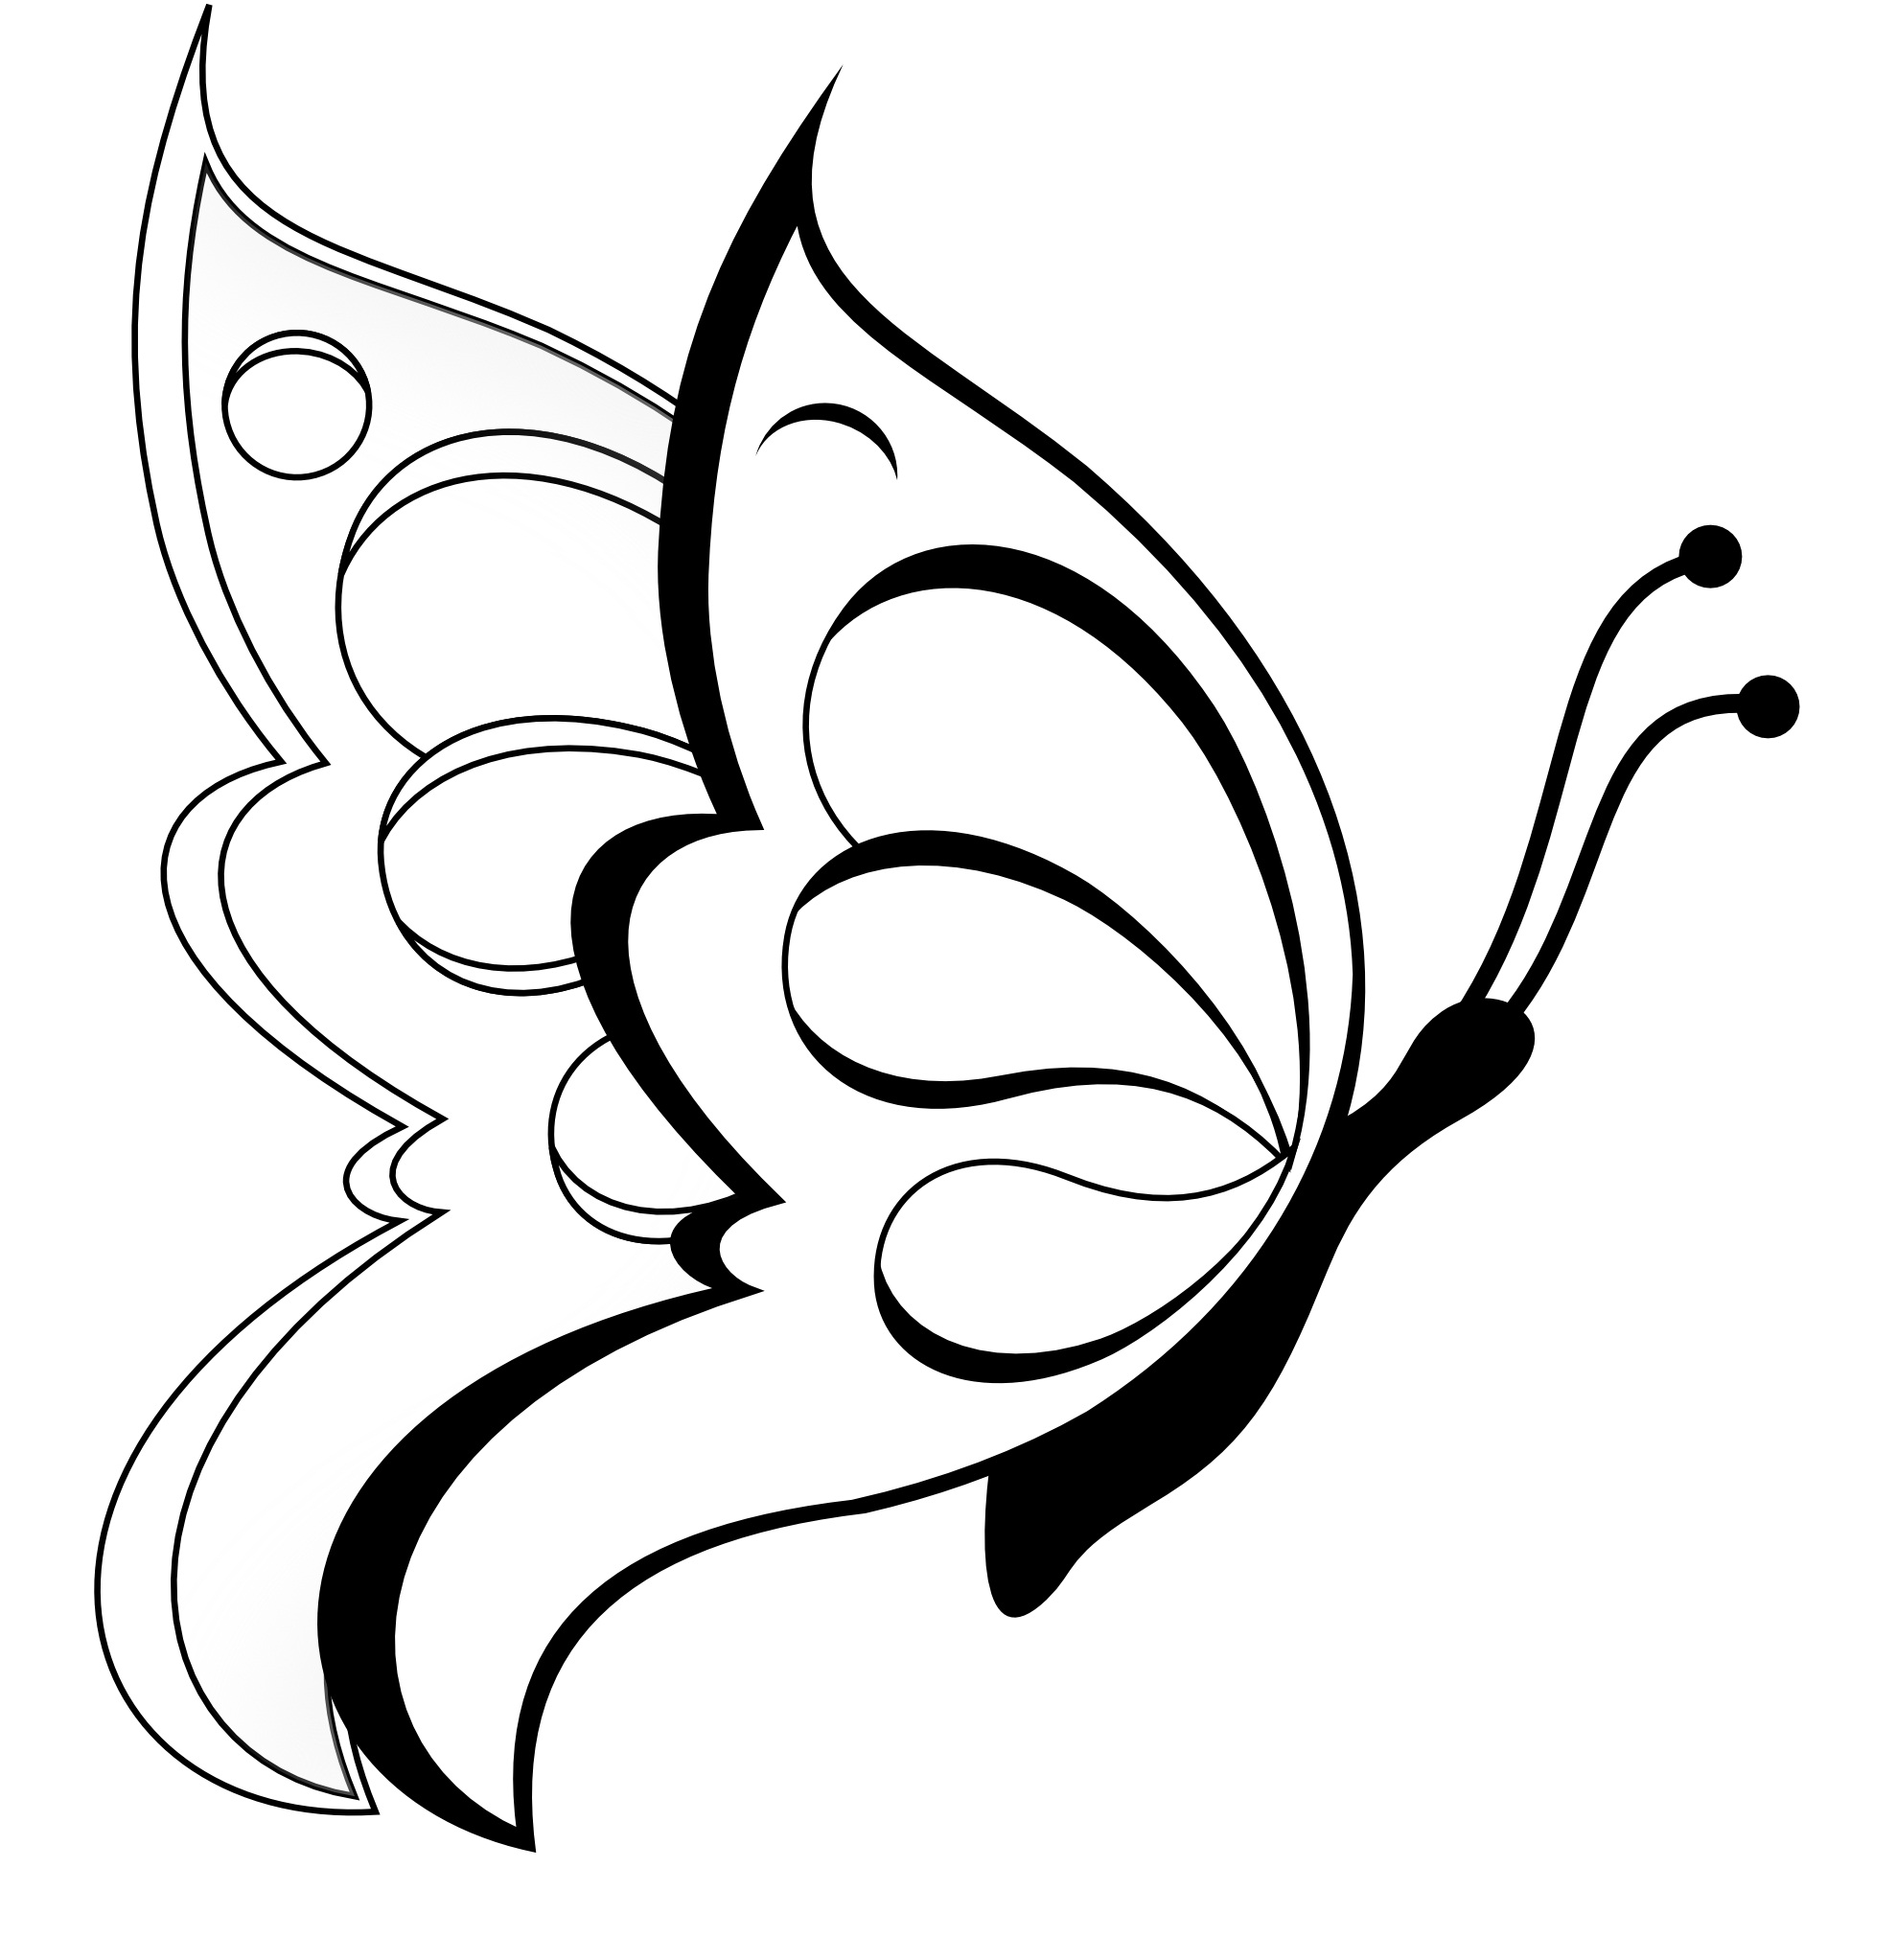 coloring pages for kids butterfly free printable butterfly coloring pages for kids pages for coloring kids butterfly